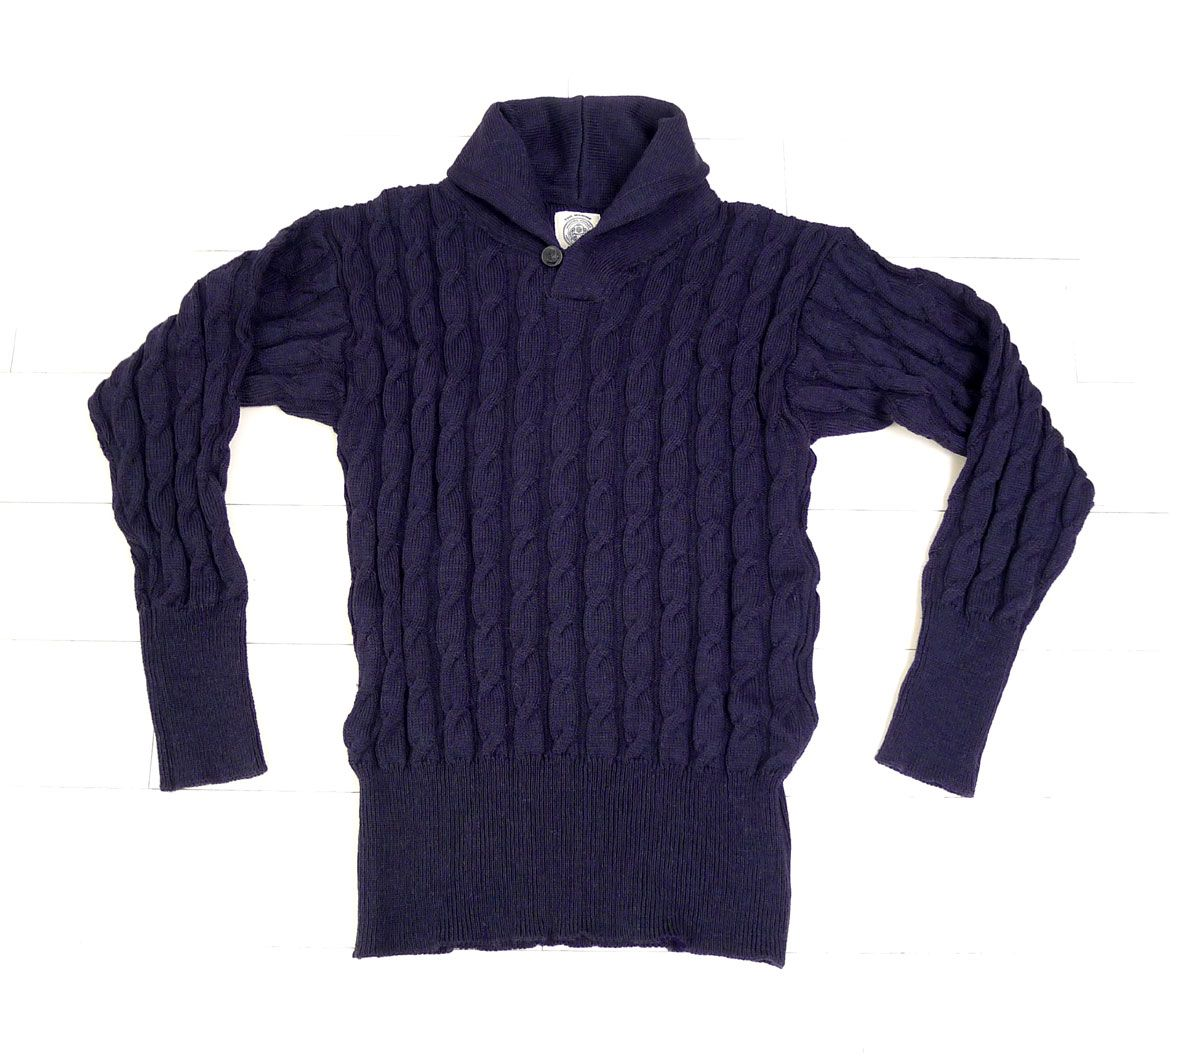 9bb7af25ca30 Pin by Giles Metcalfe on Knitwear | Clothes, North sea, Sea